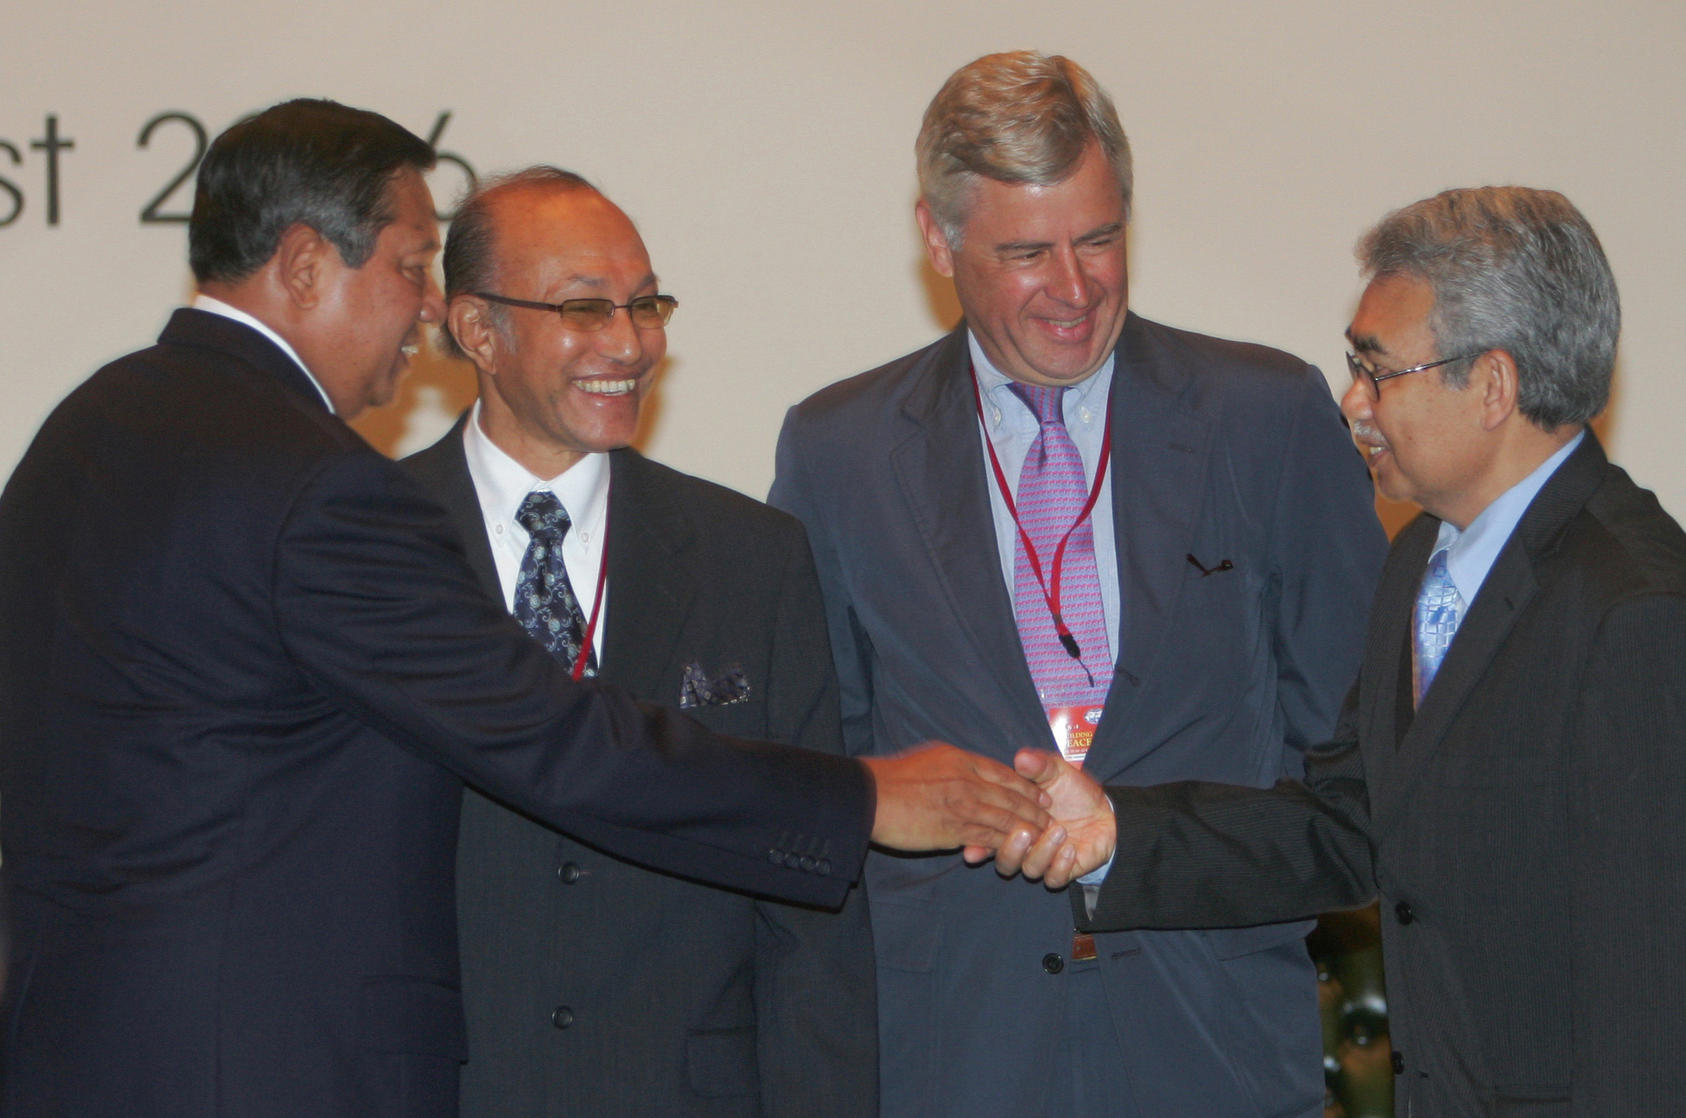 Indonesian president Susilo Bambang Yudhoyono (left) greets former Aceh rebel leaders with the head of Aceh Monitoring Mission, Pieter Feith (second from right), during an August 14, 2006 conference. (Dita Alangkara/AP)